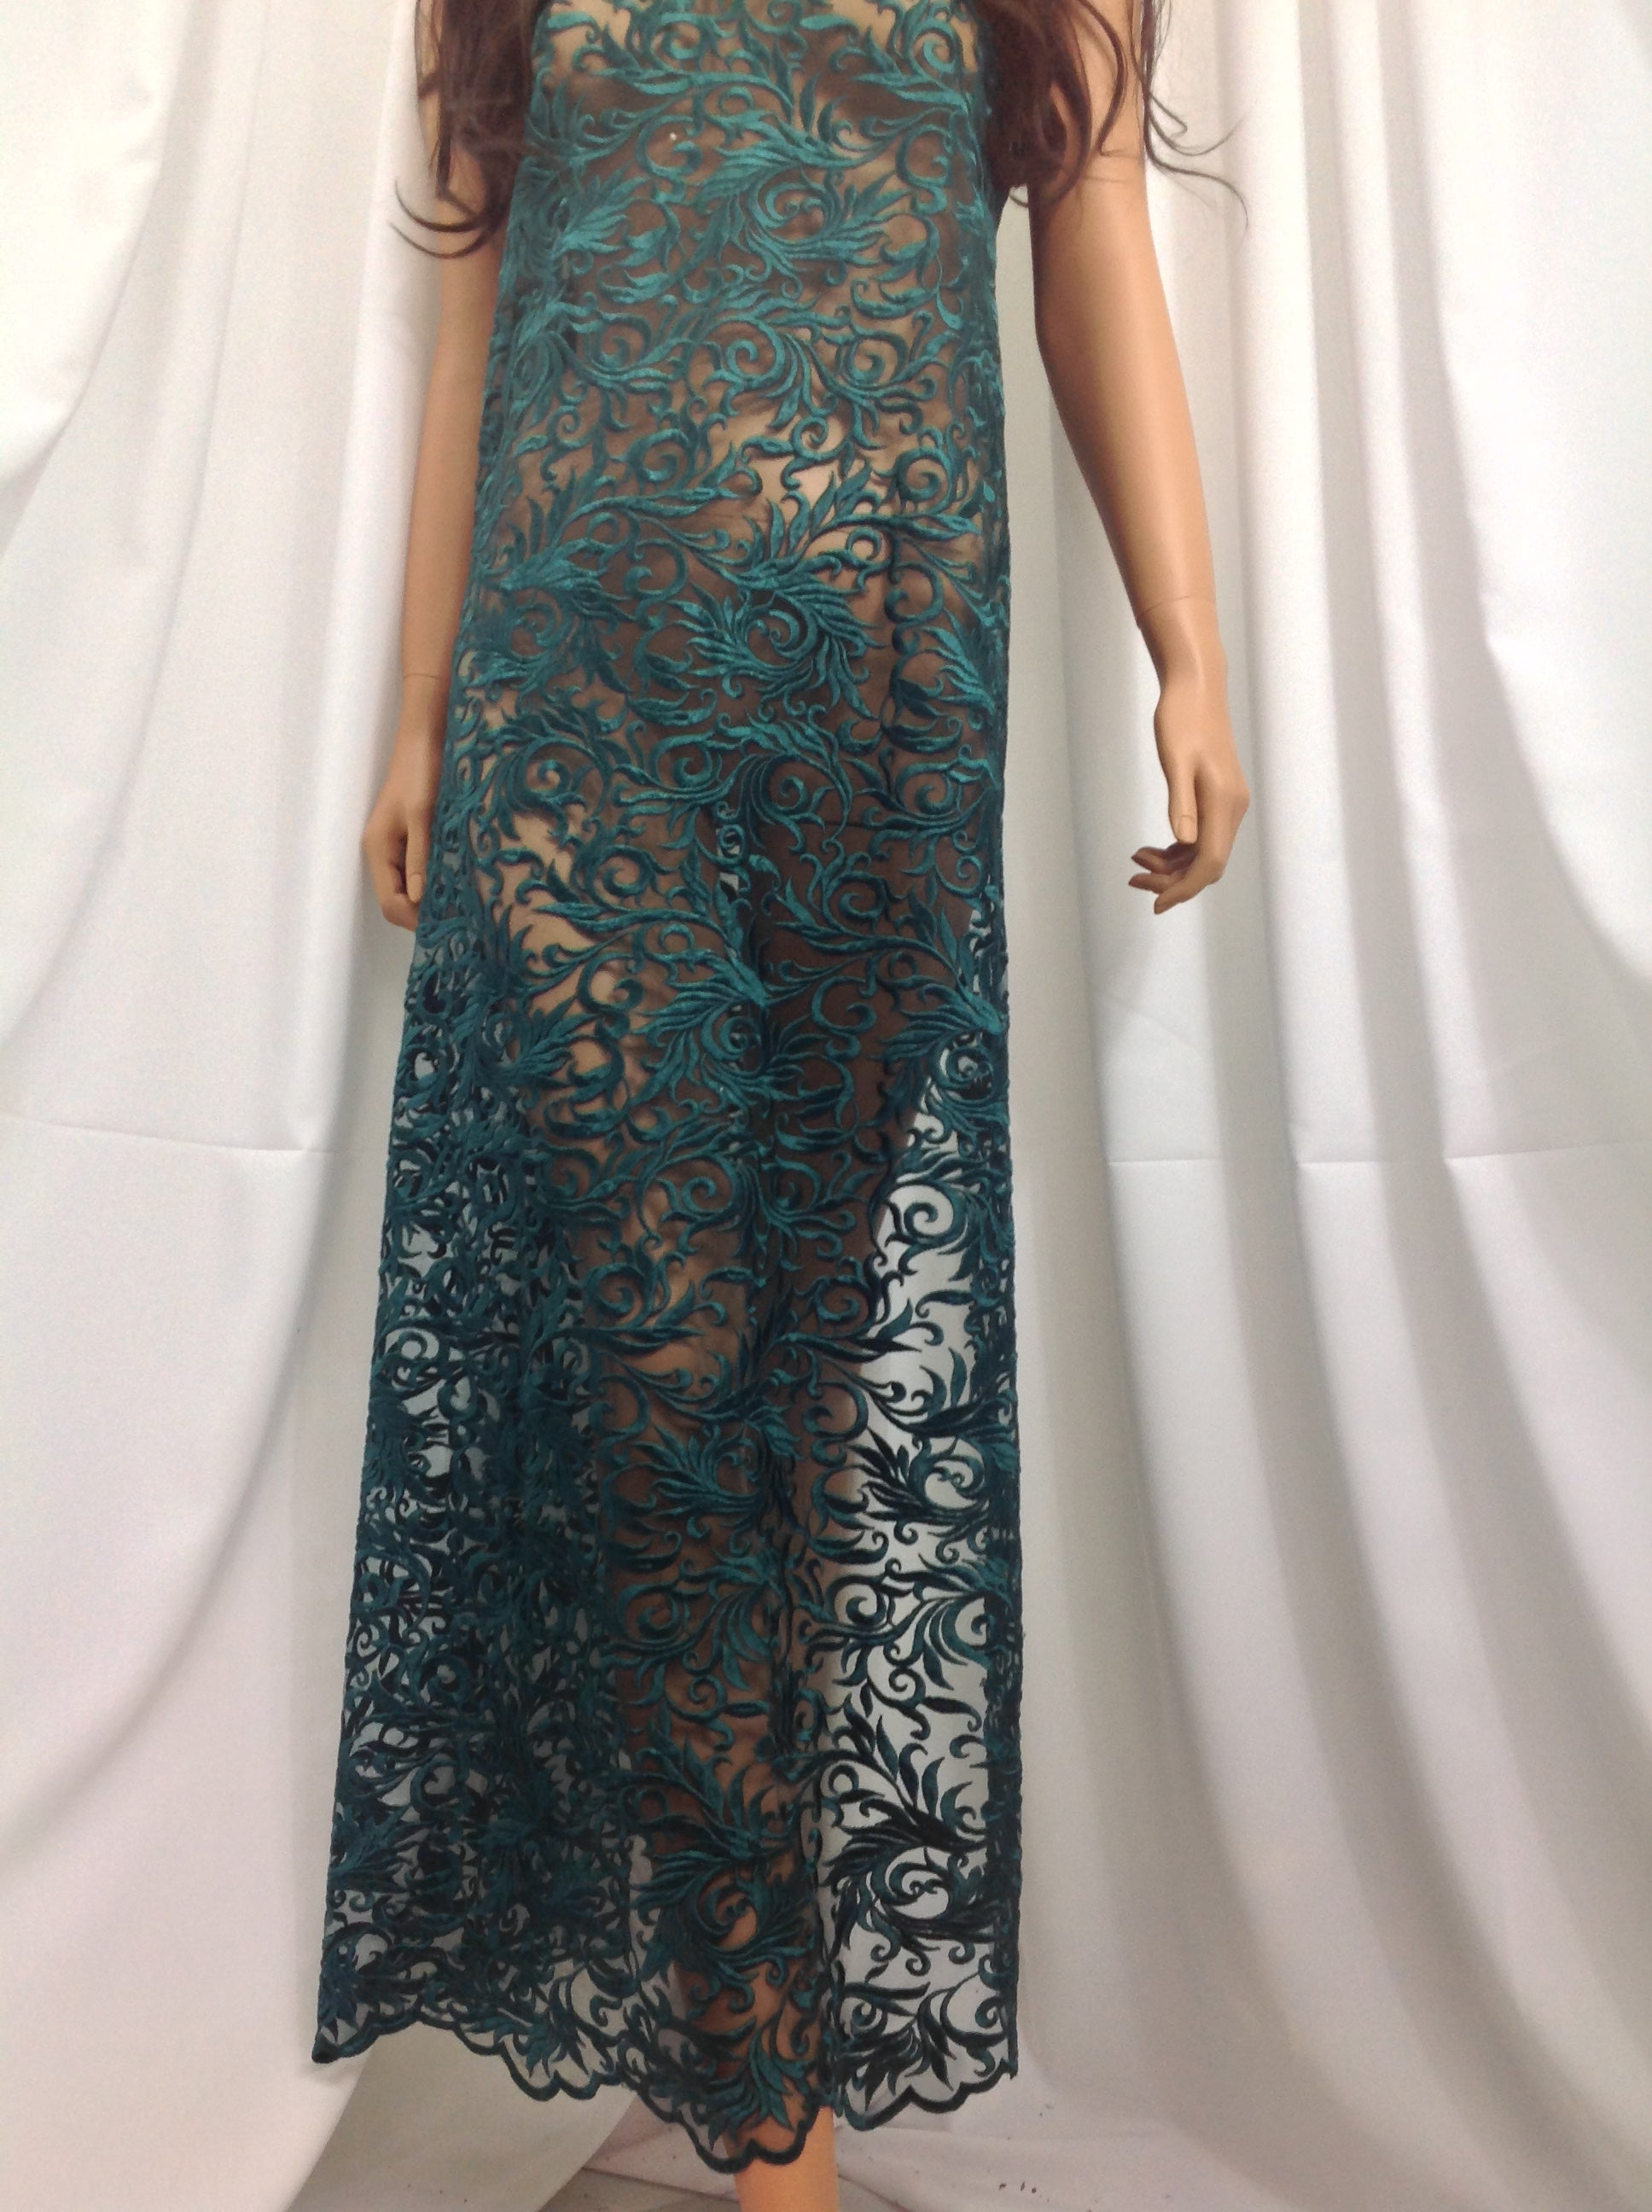 Precious Design Green Guipure Lace - Mesh Dress Top-Trim Bridal Wedding Decorations By The Yard - KINGDOM OF FABRICS